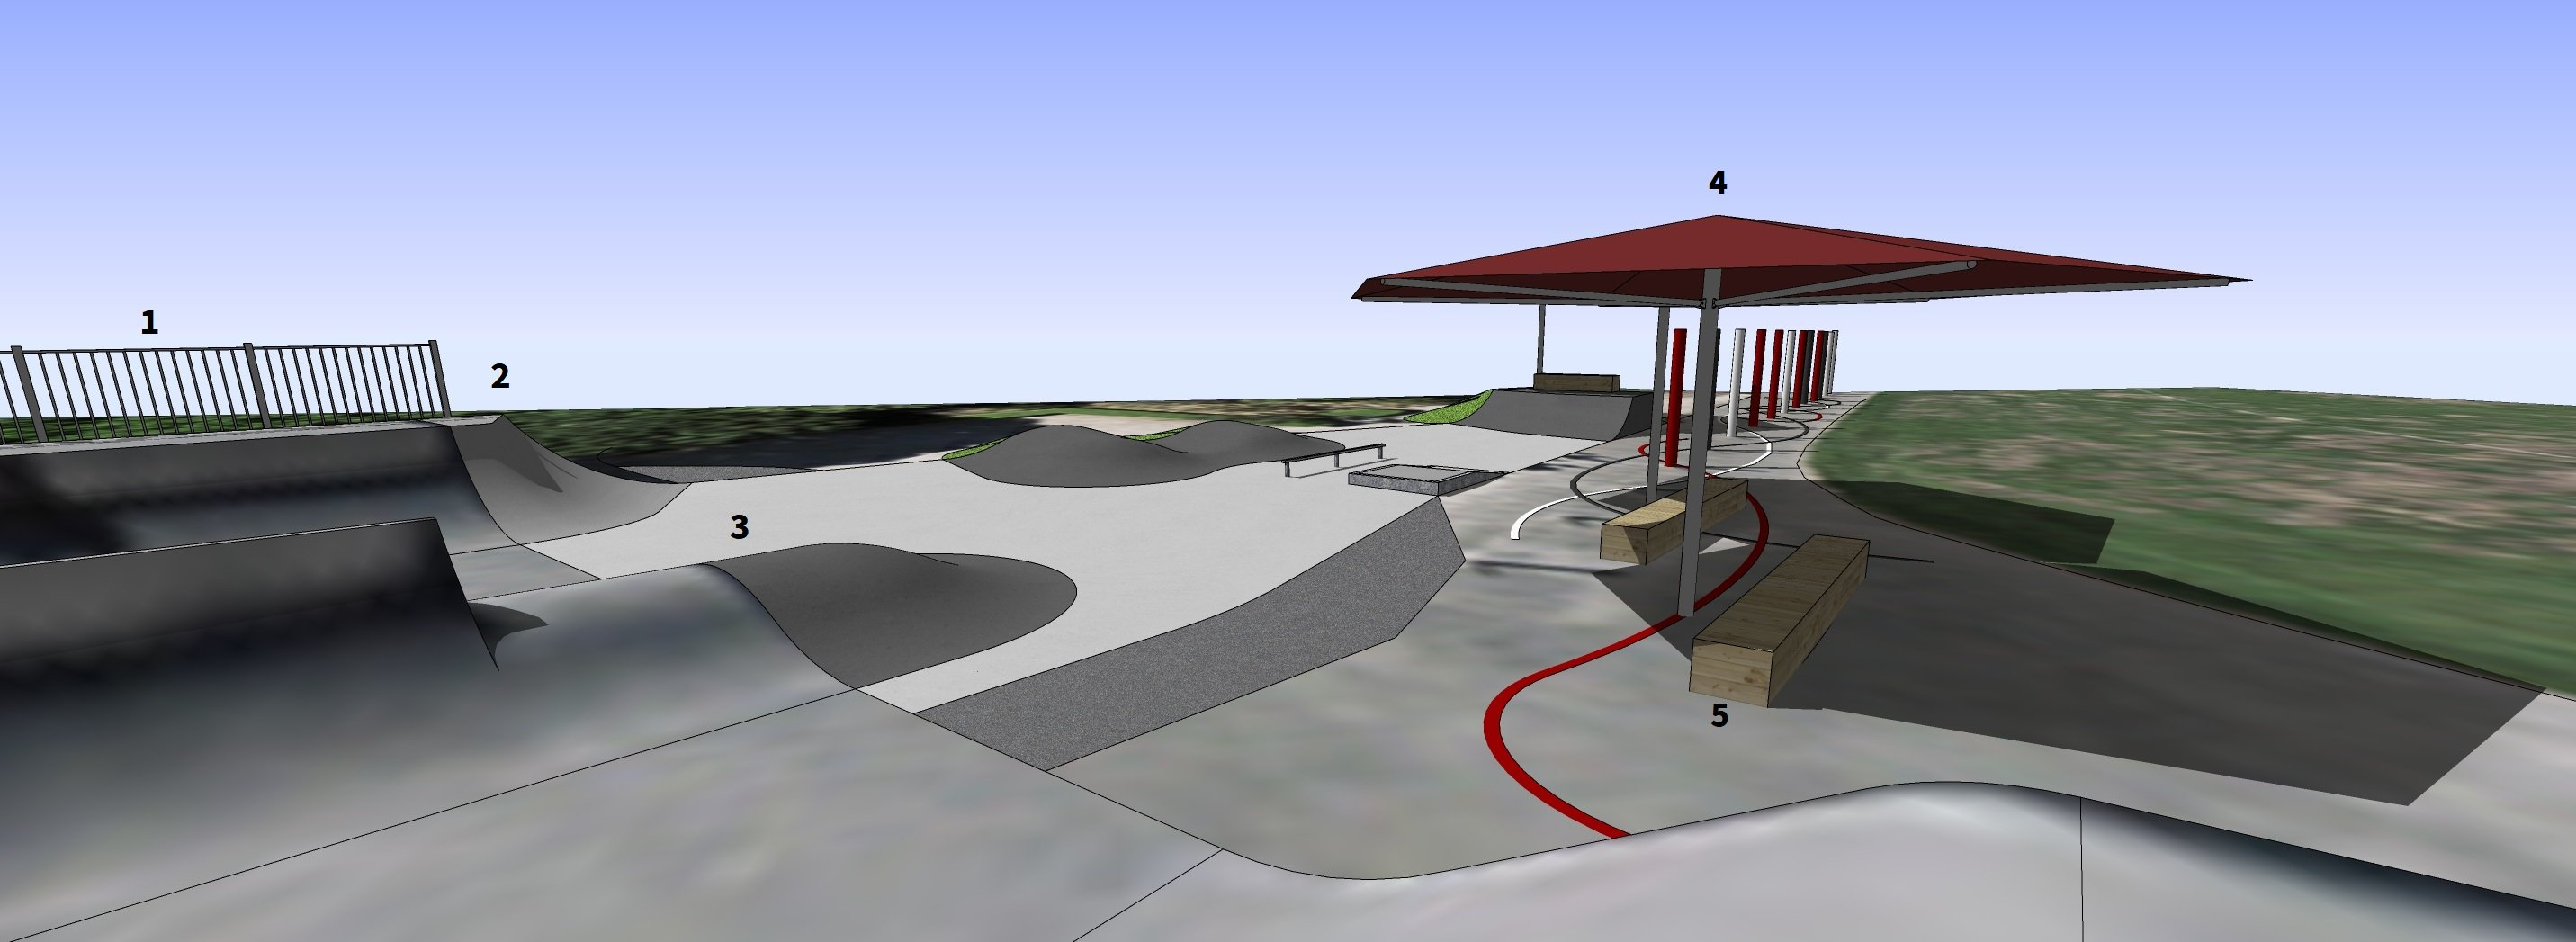 3D view of the proposed extension for St Albans skate park